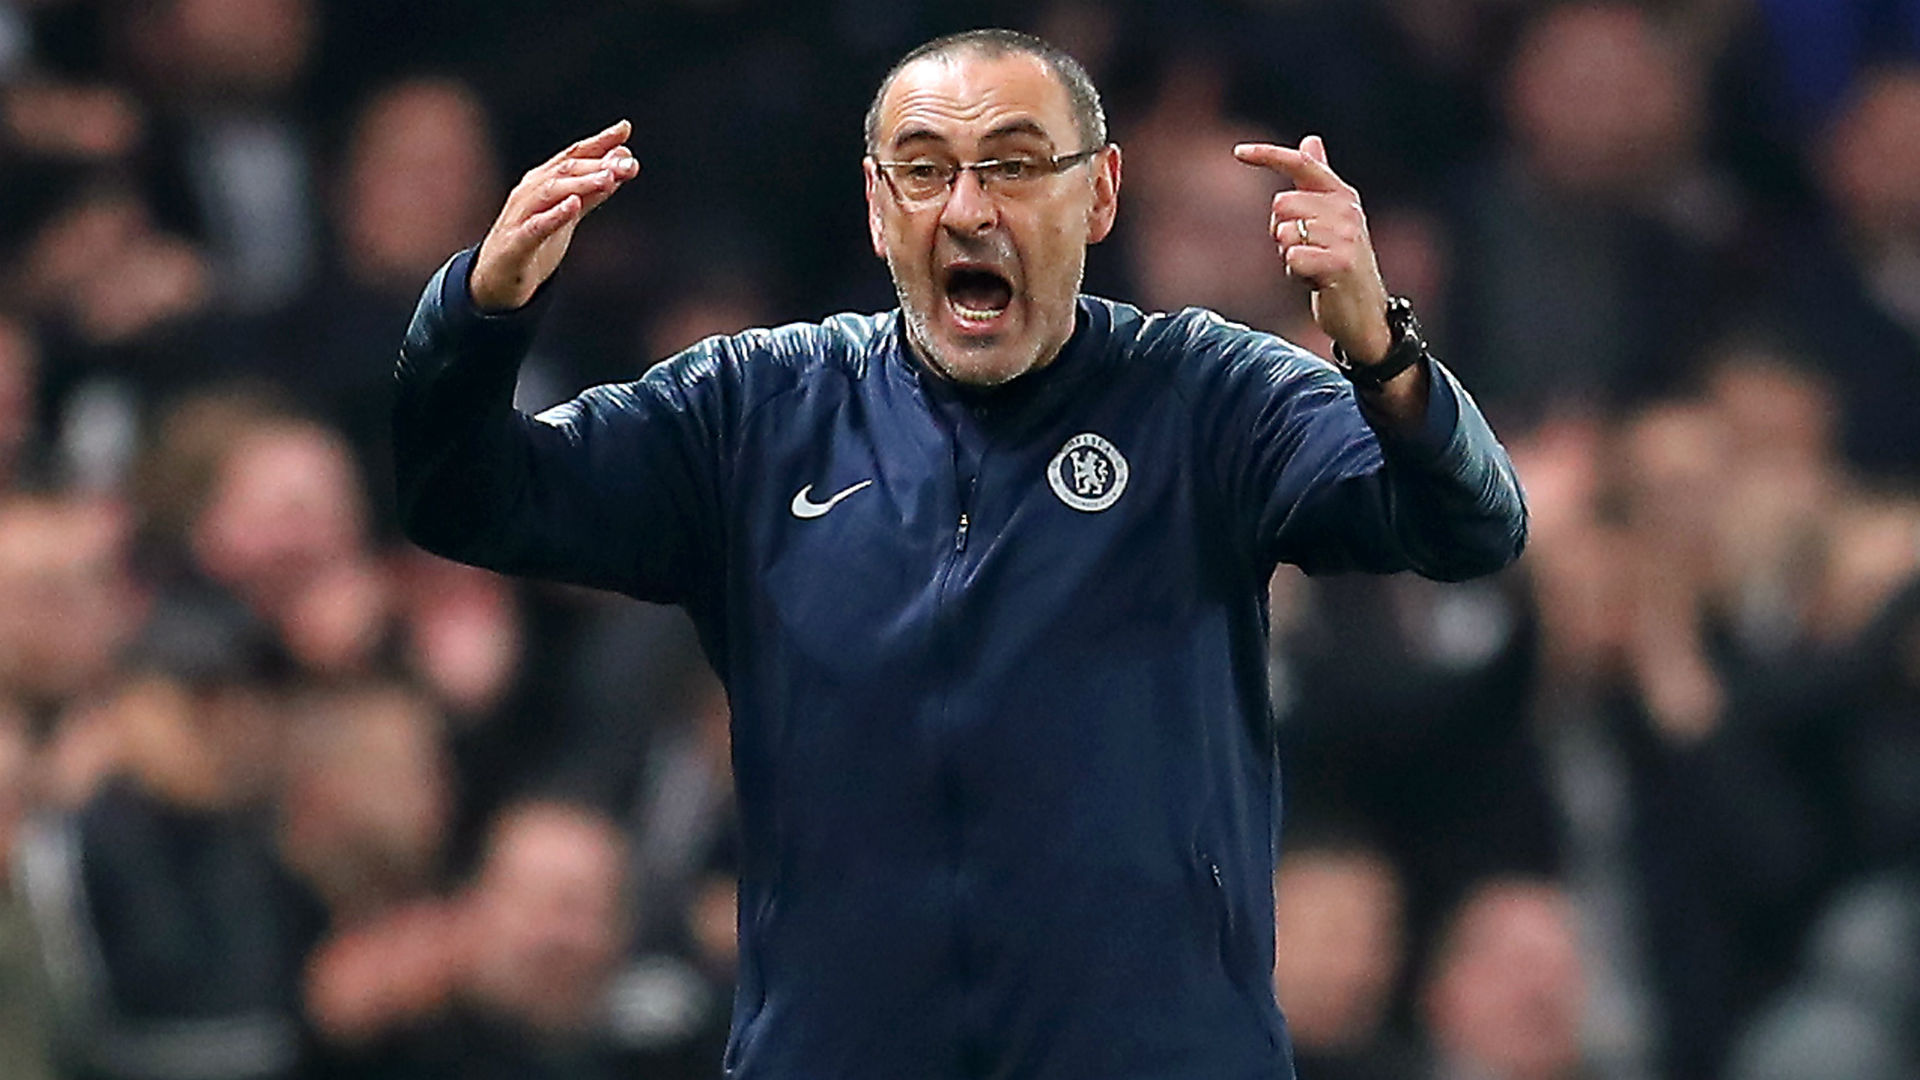 If my job depends on one game, I want to leave Chelsea immediately – Sarri